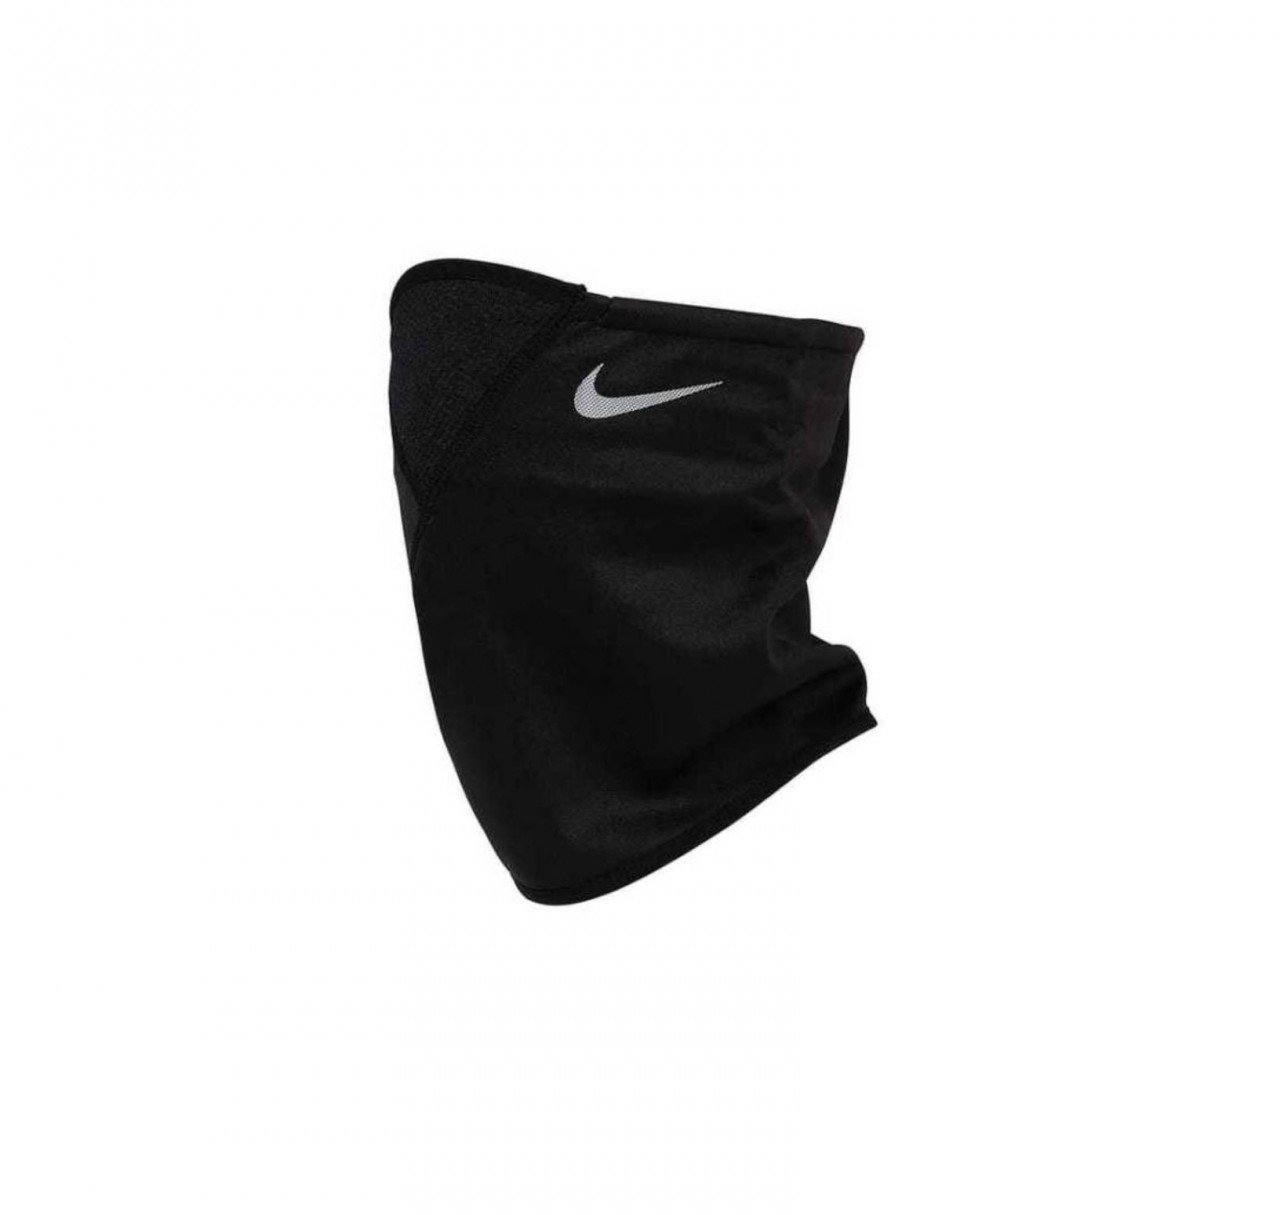 NIKE Adult's Therma Sphere Adjustable Neck Warmer (Black(NWA63-063)/Reflective Silver, One Size)